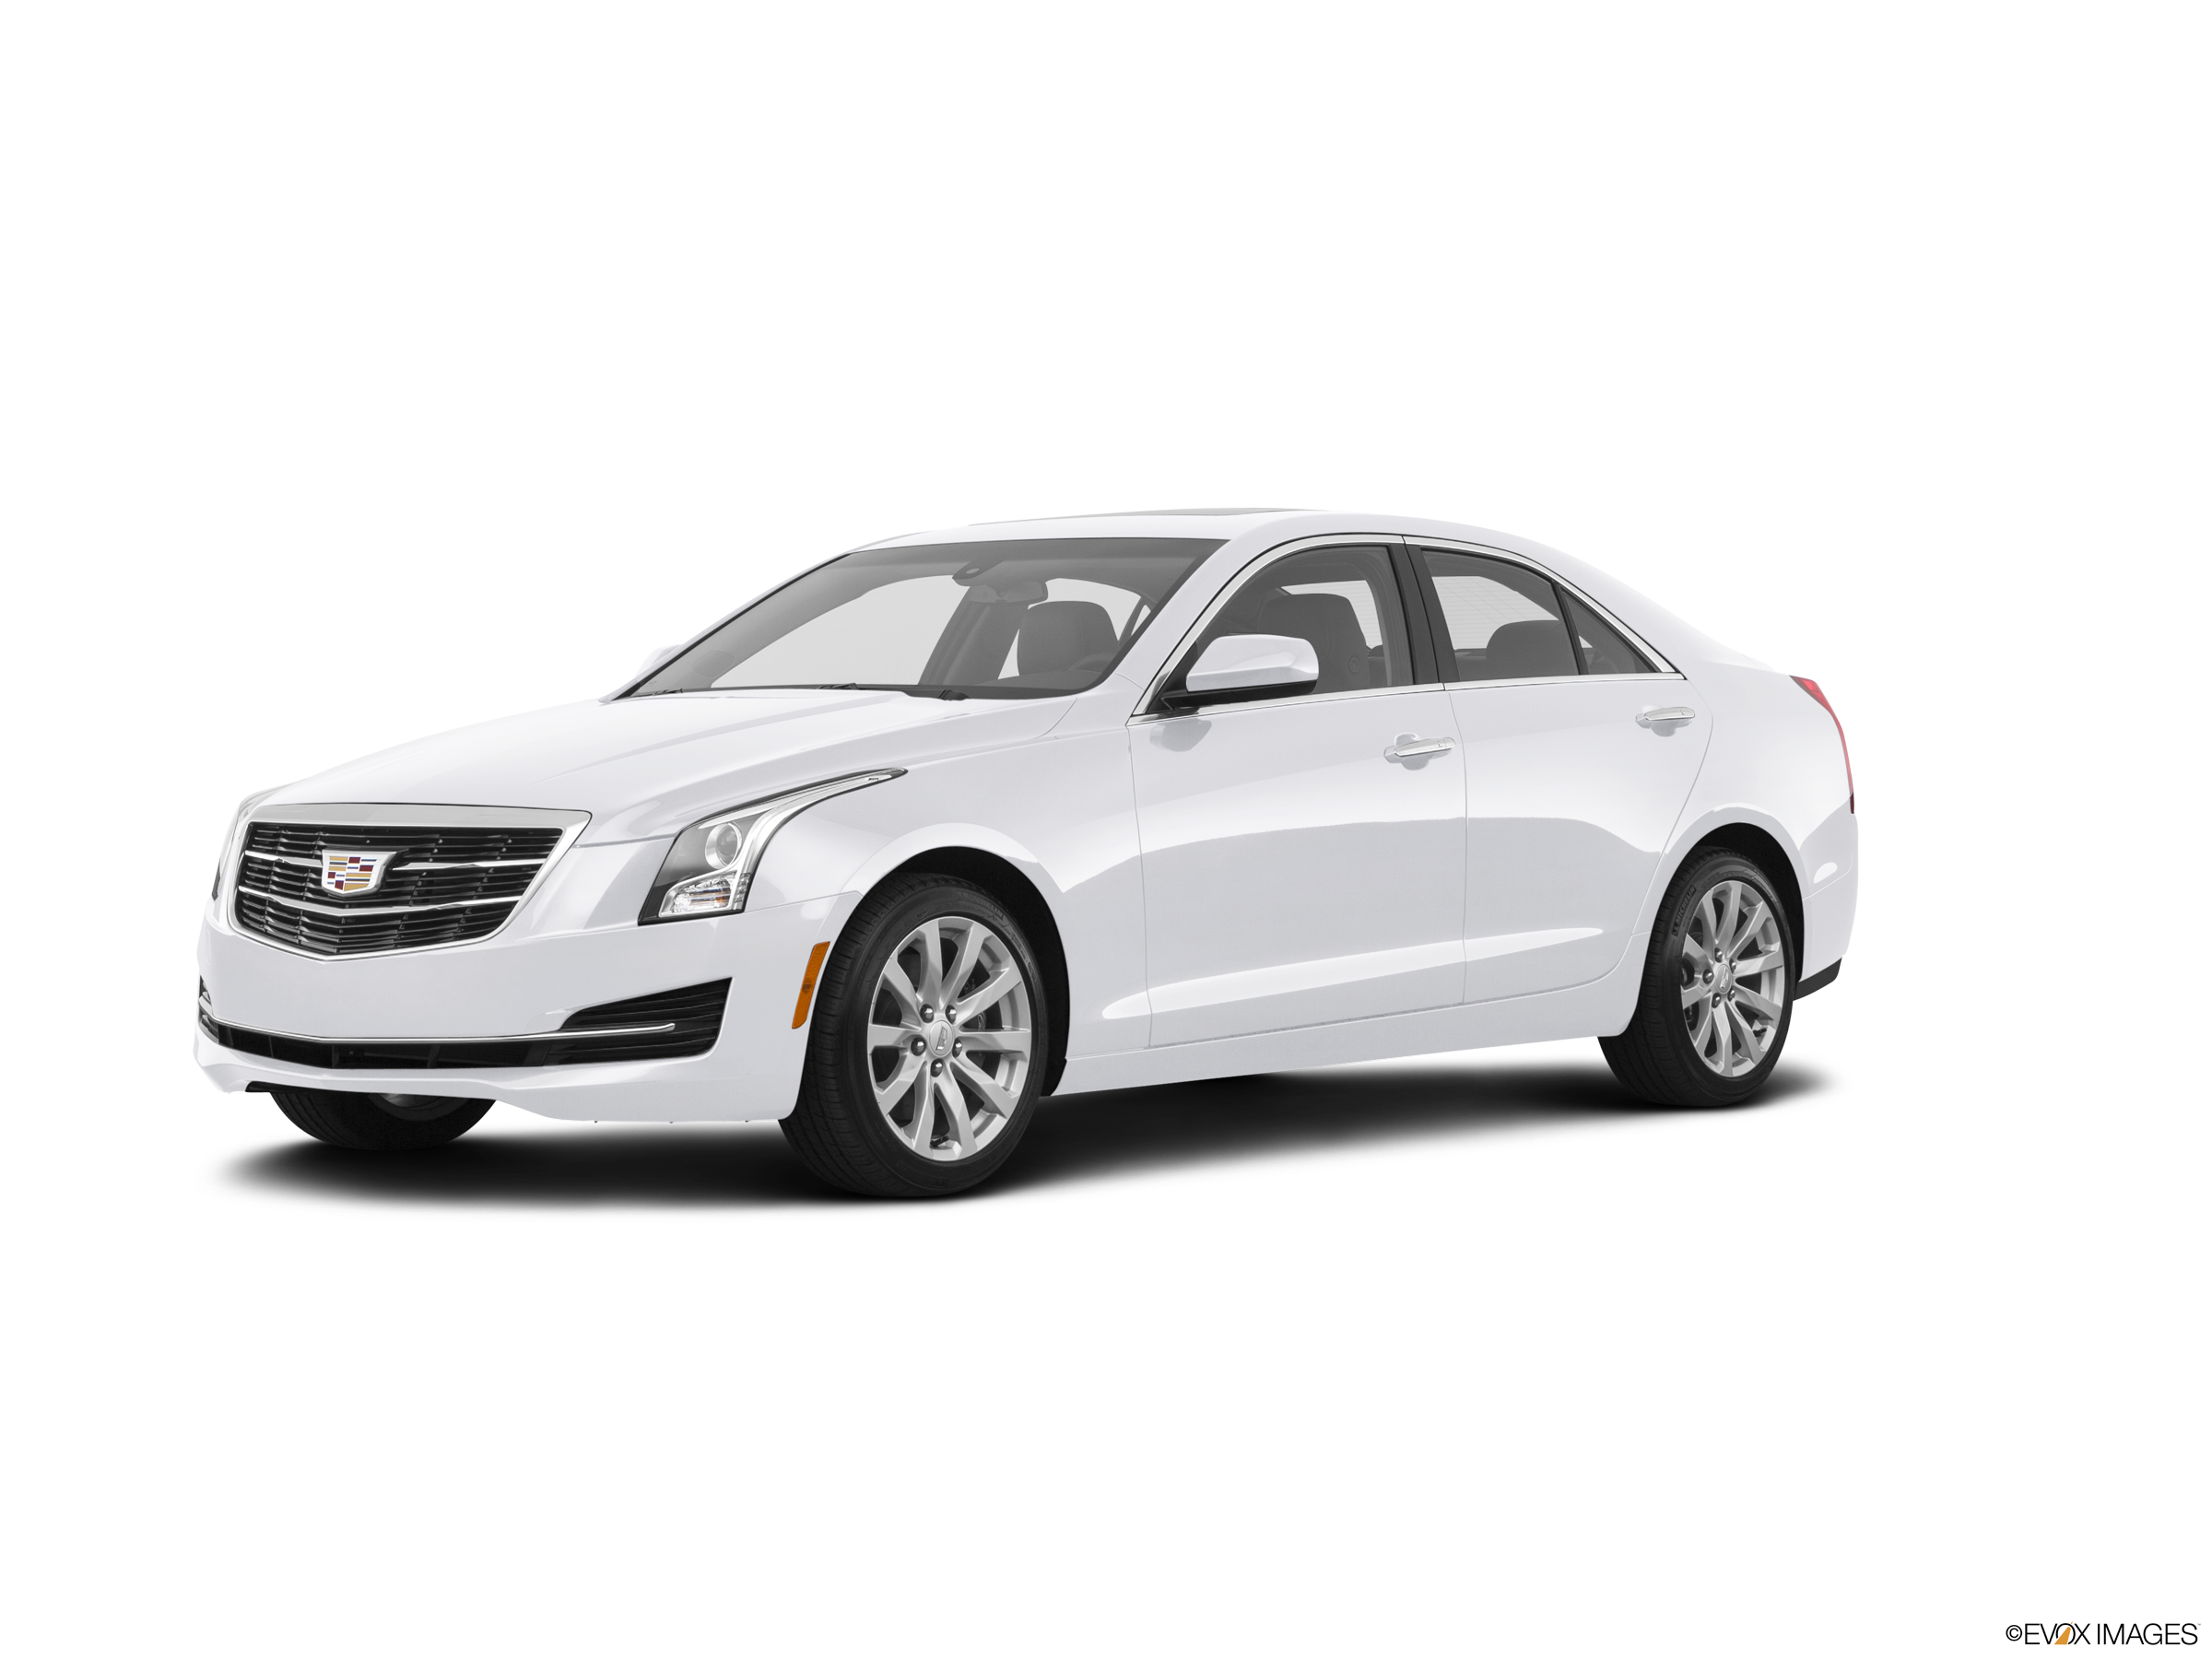 10 Best Luxury Cars Under $35,000 - 2018 Cadillac ATS